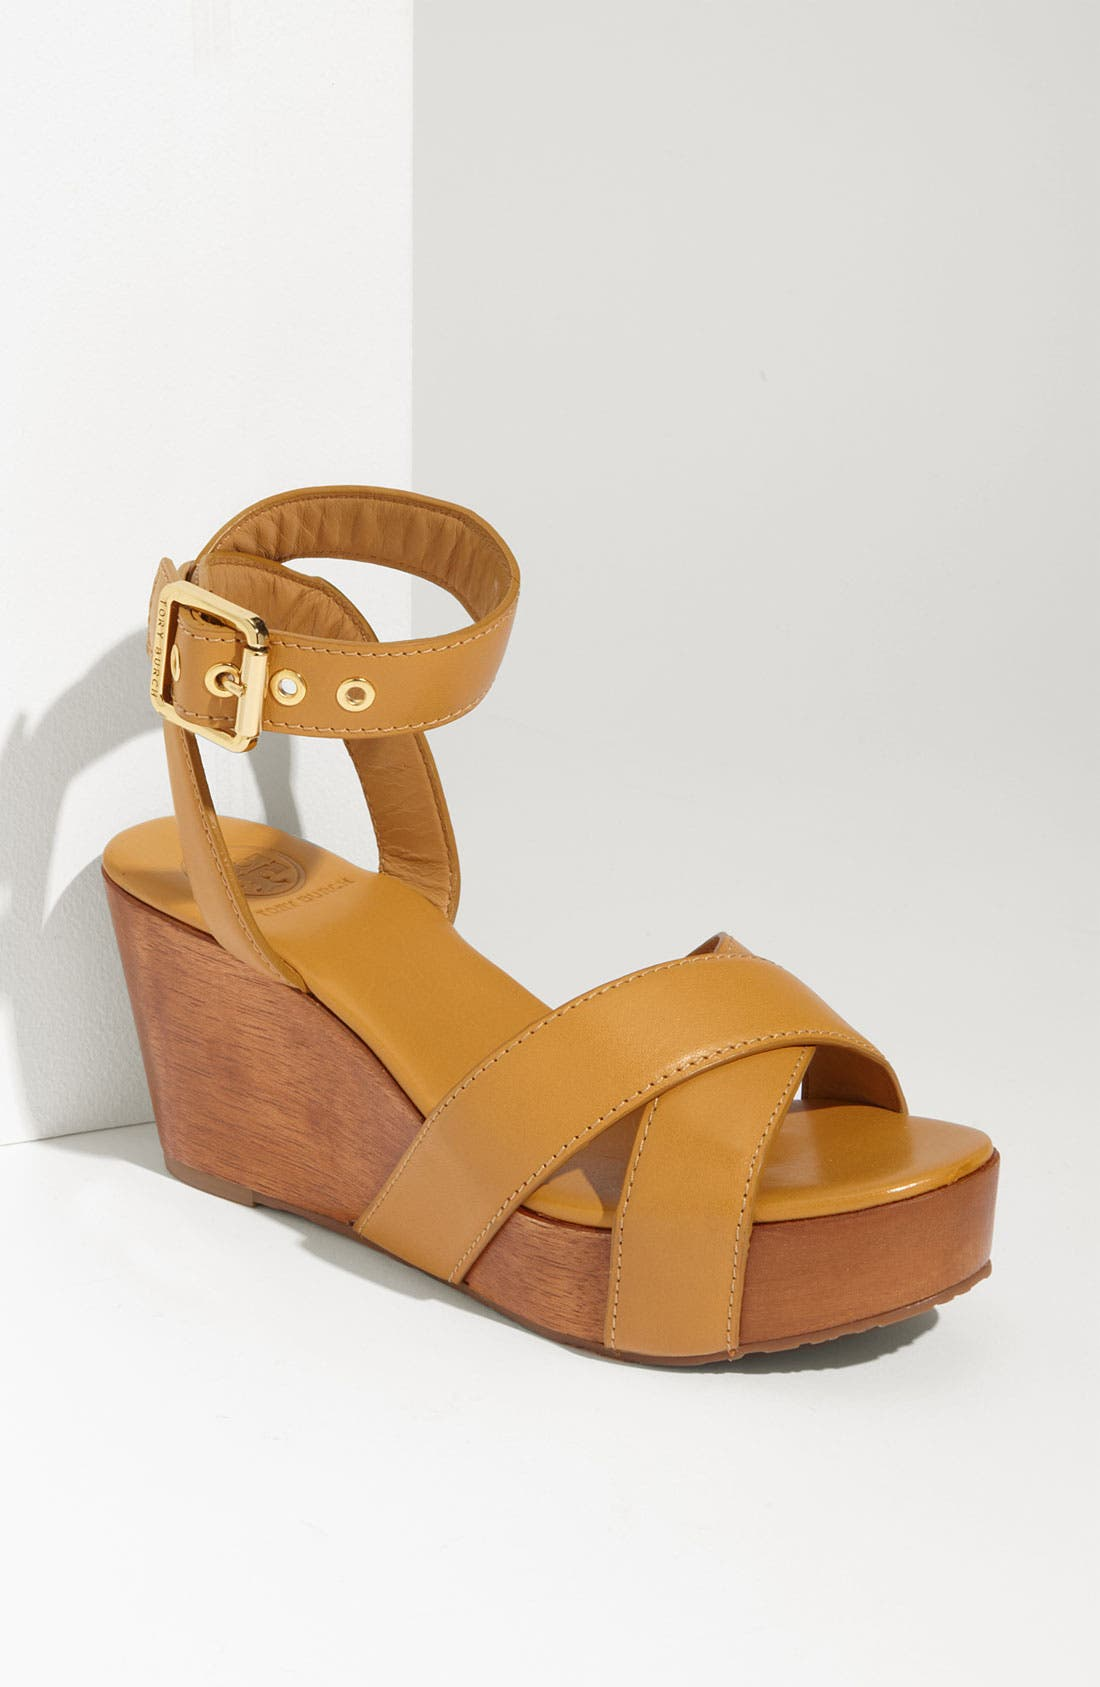 Main Image - Tory Burch 'Almita' Wedge Sandal